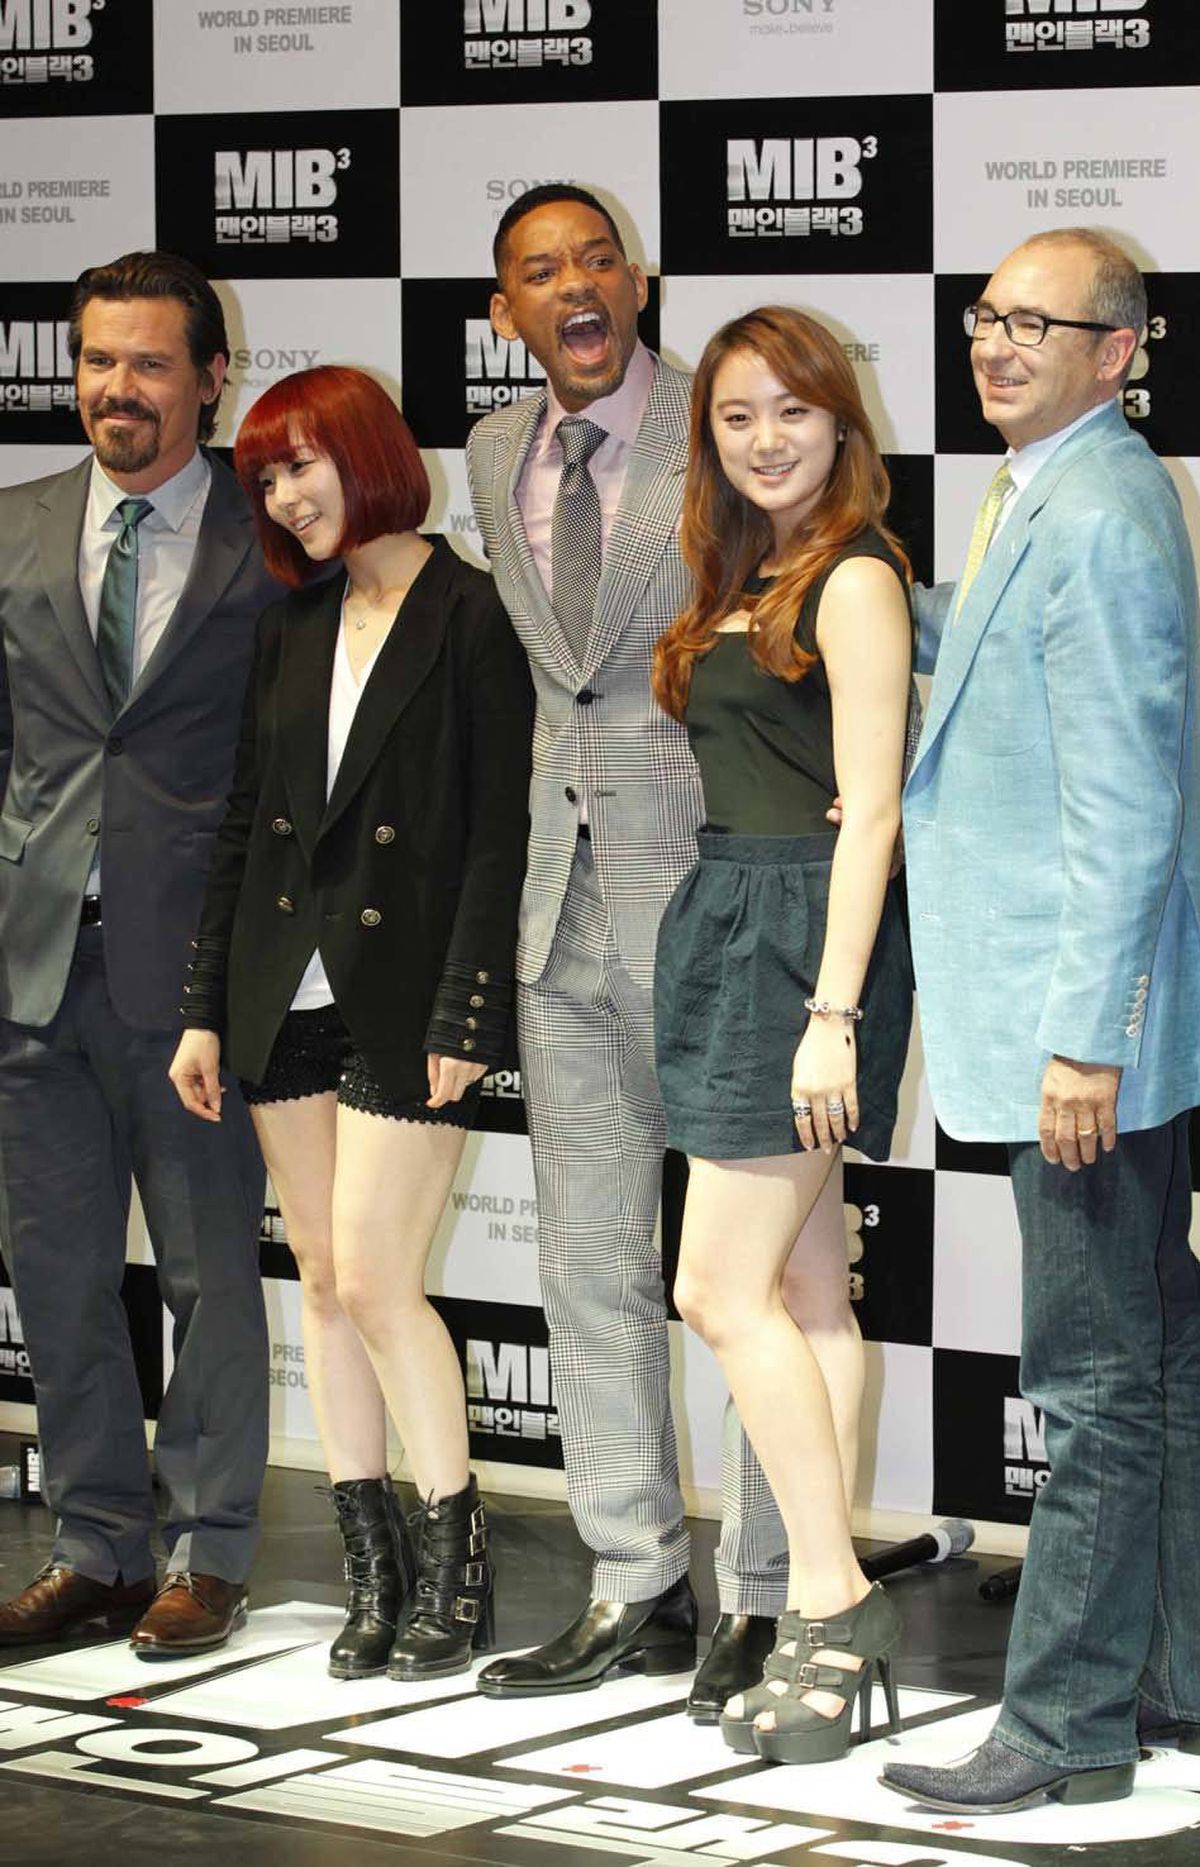 """Will Smith (centre) does this thing with his mouth at the premiere of """"Men in Black III"""" in Seoul, South Korea, on Monday."""